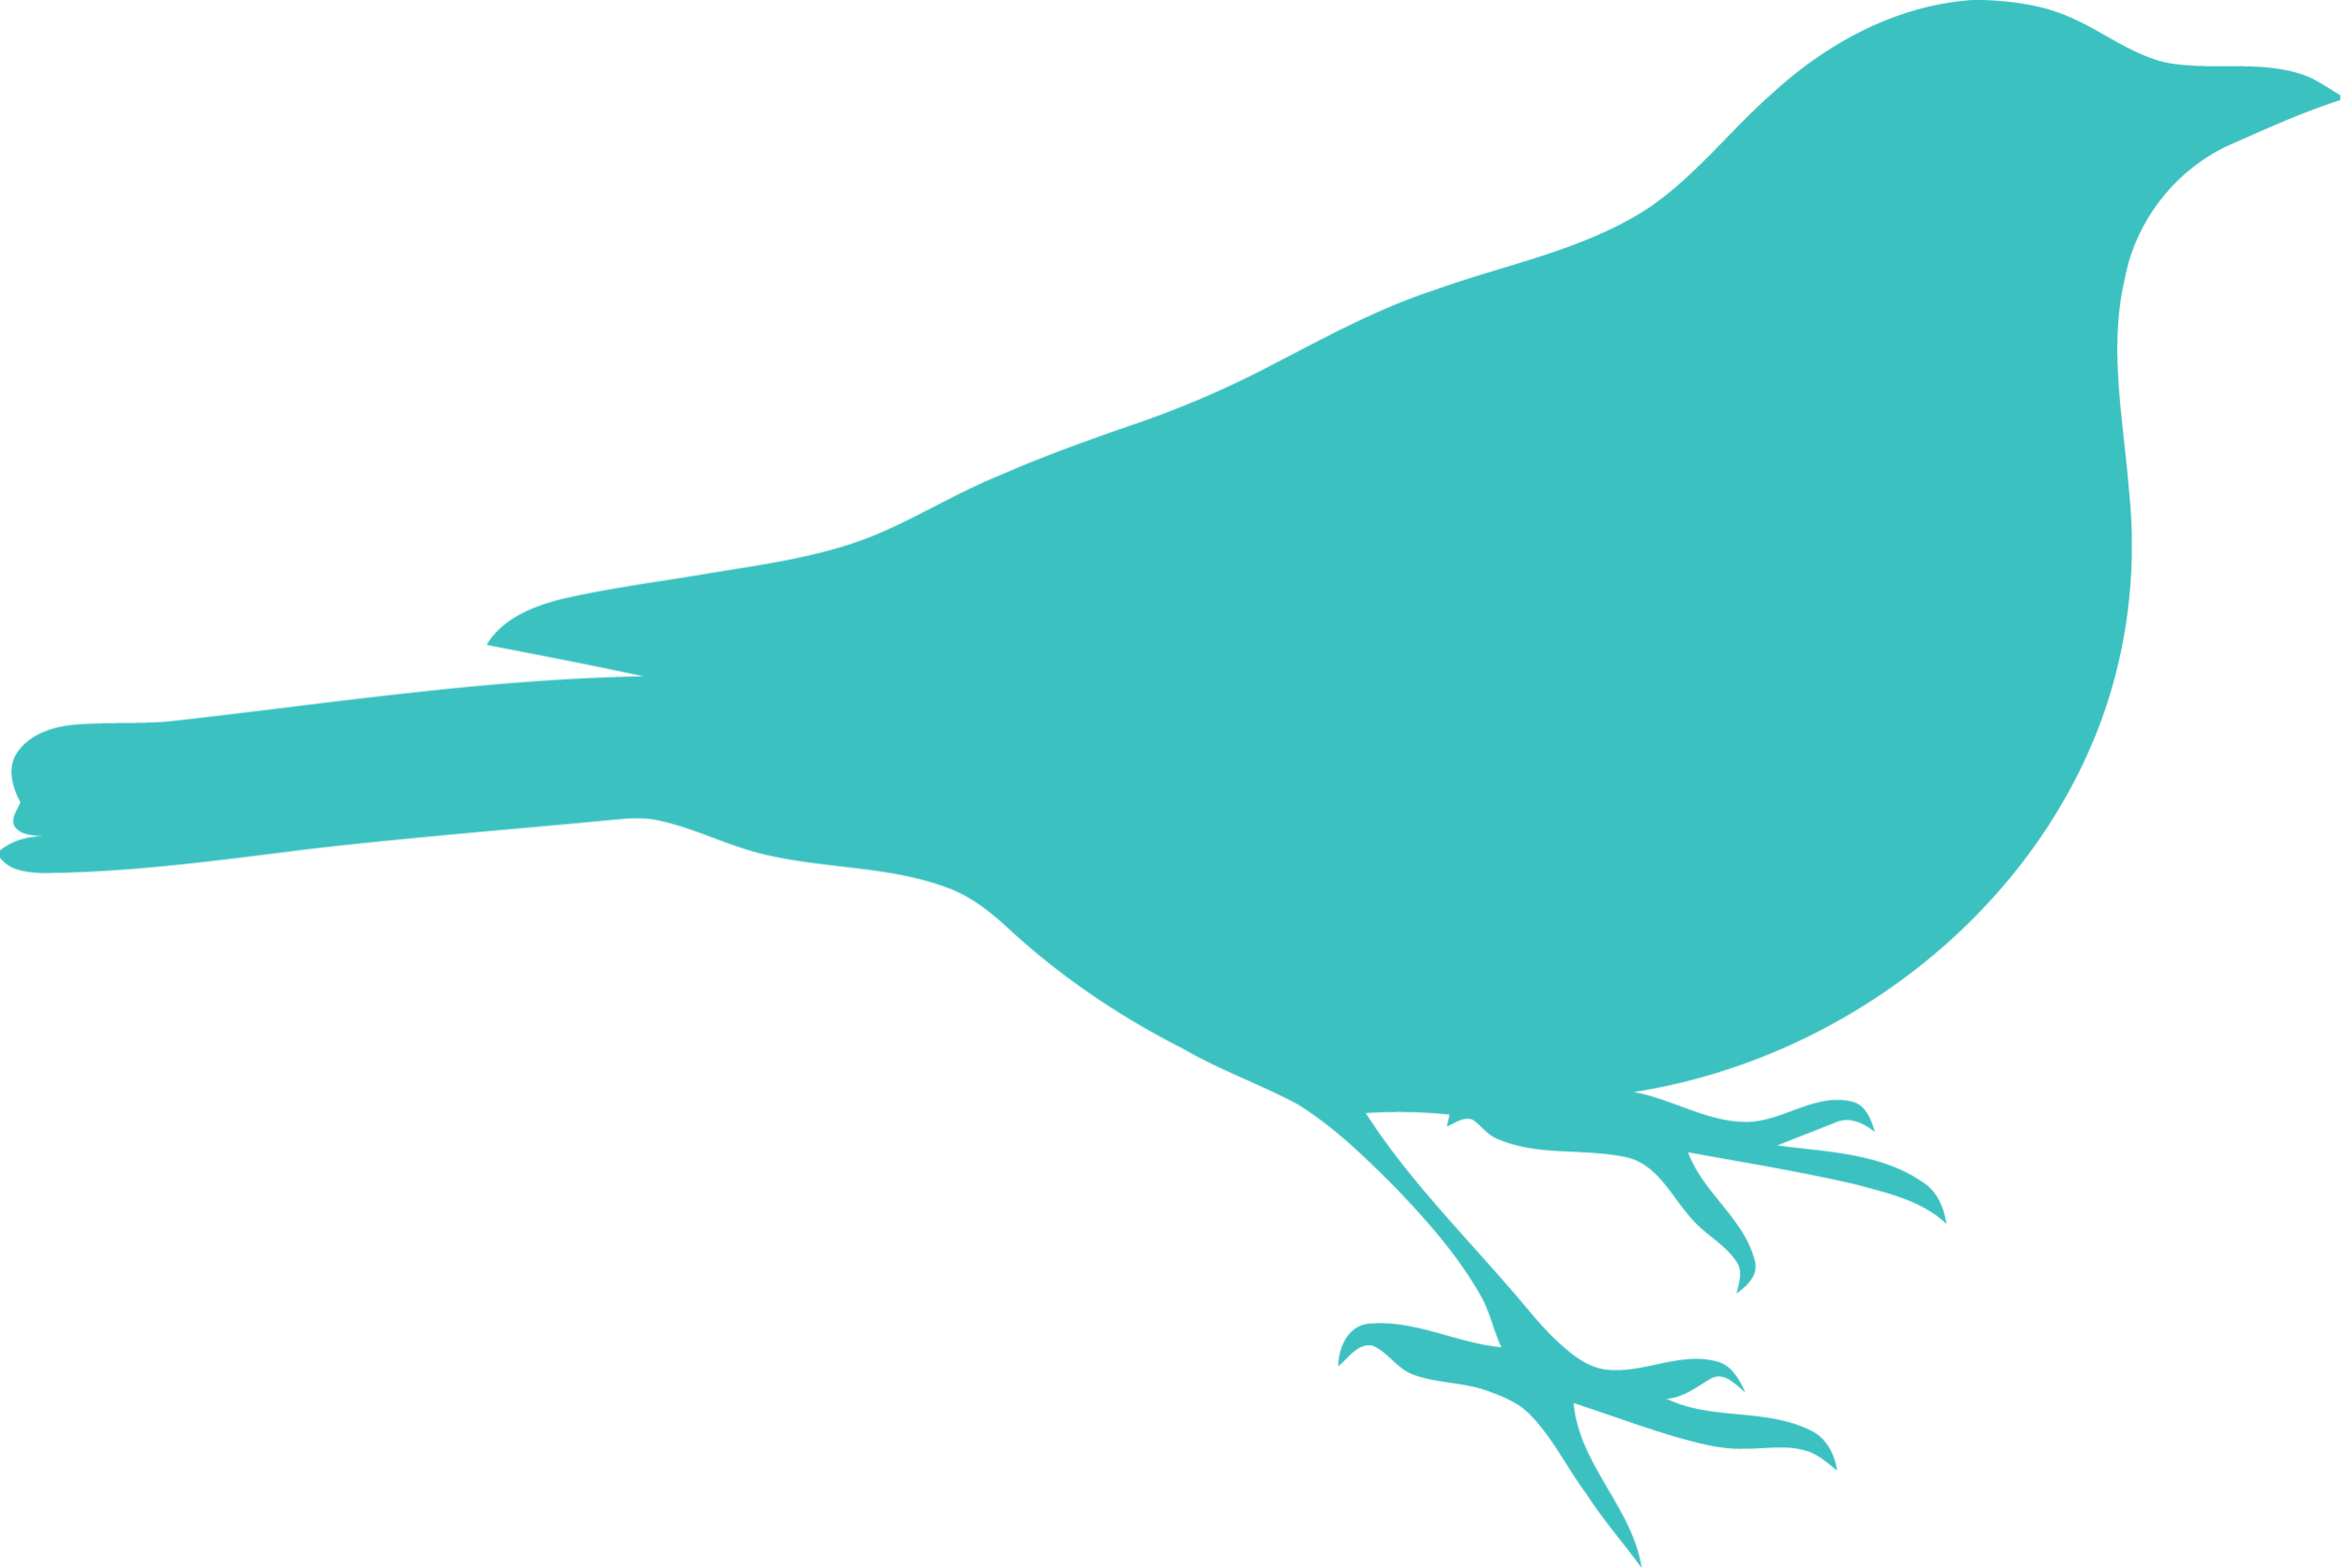 Medium-Turquoise-Bird-Clipart-Png.png